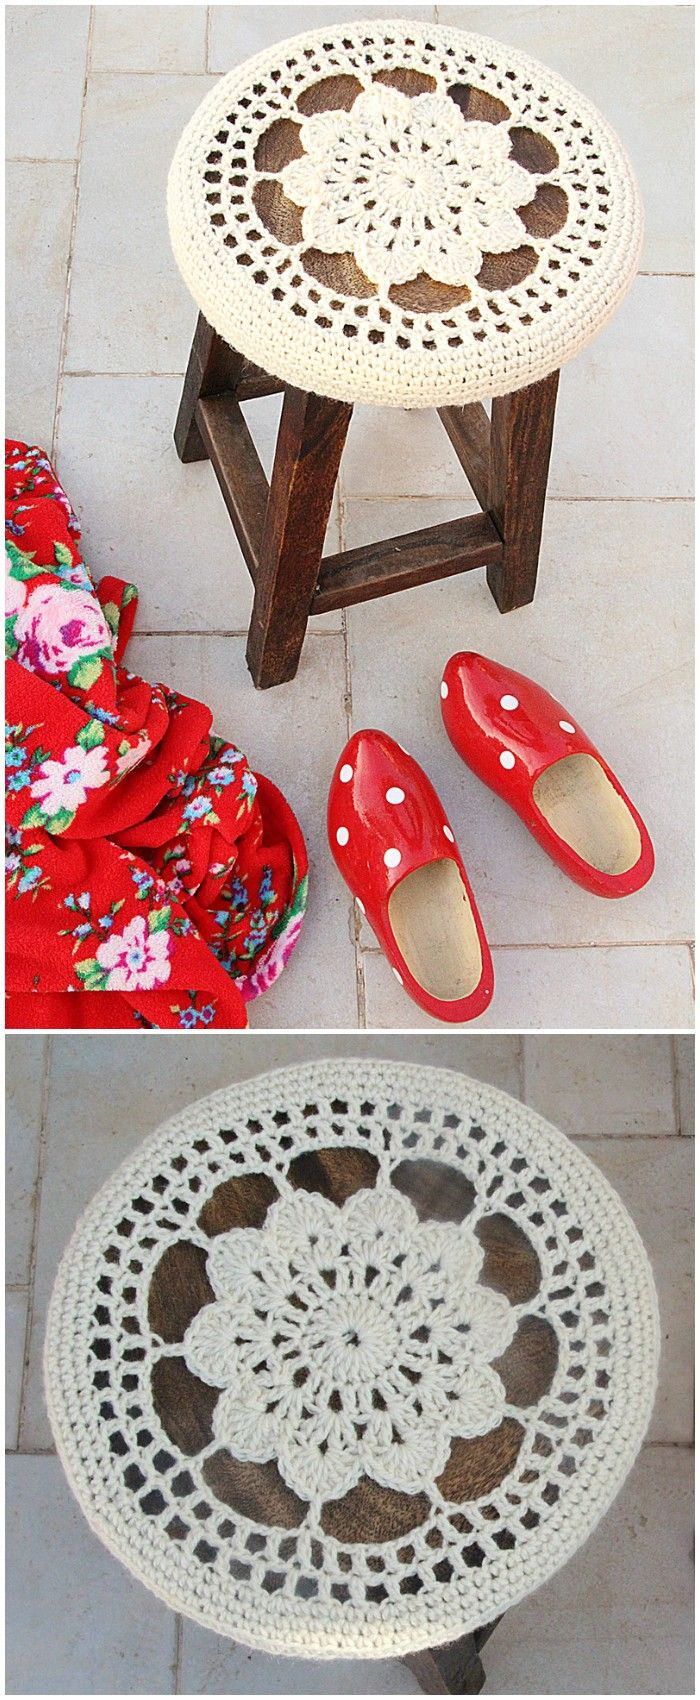 Easy Free Crochet Home Decor Patterns | Stool Covers, Free Crochet And  Crochet